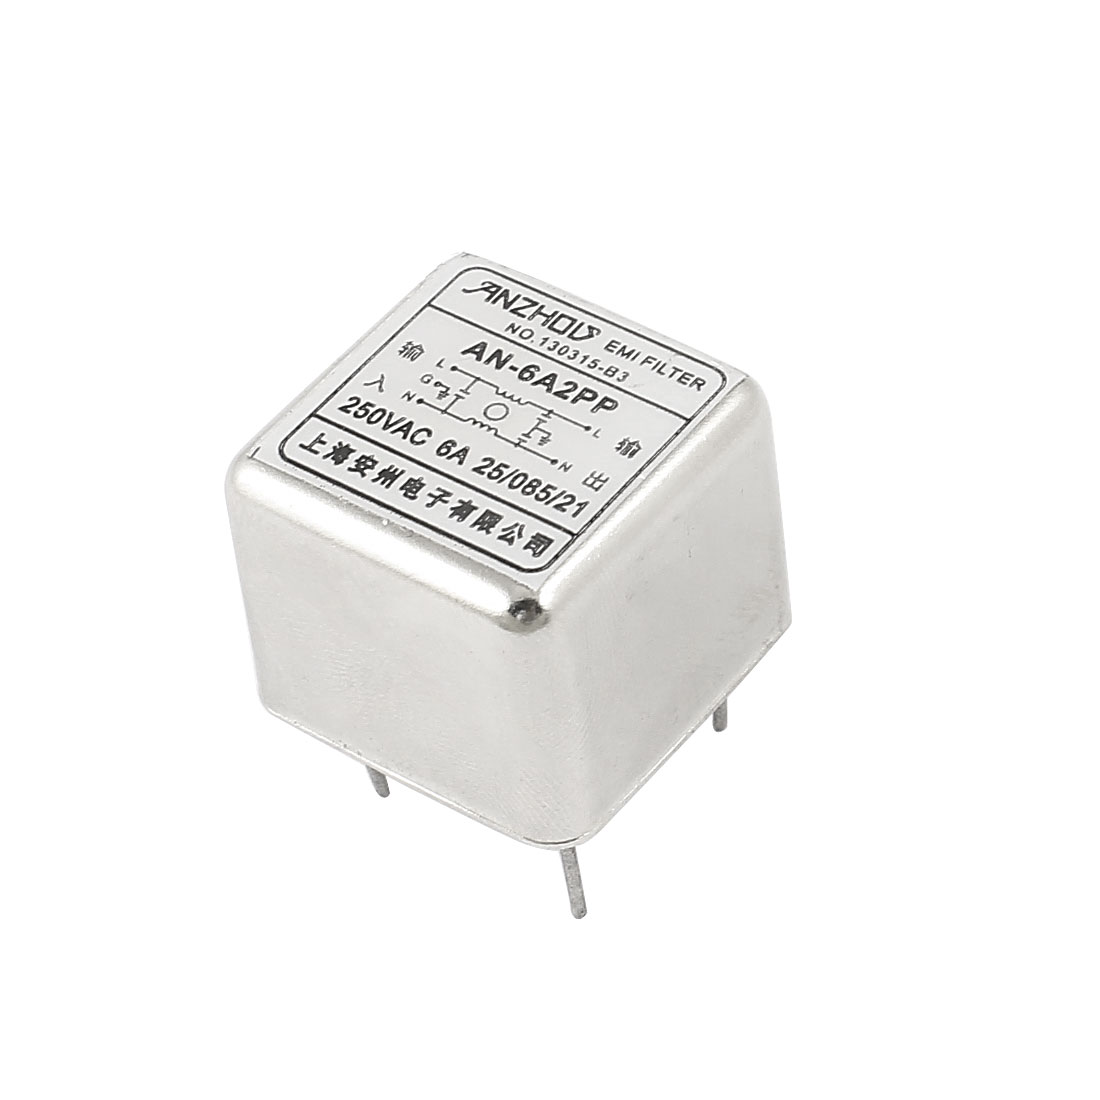 AN-6A2PP AC250V 6A 5-Pin Single Phase Through Hole Mounting Noise Suppressor General Purpose Power EMI Filter